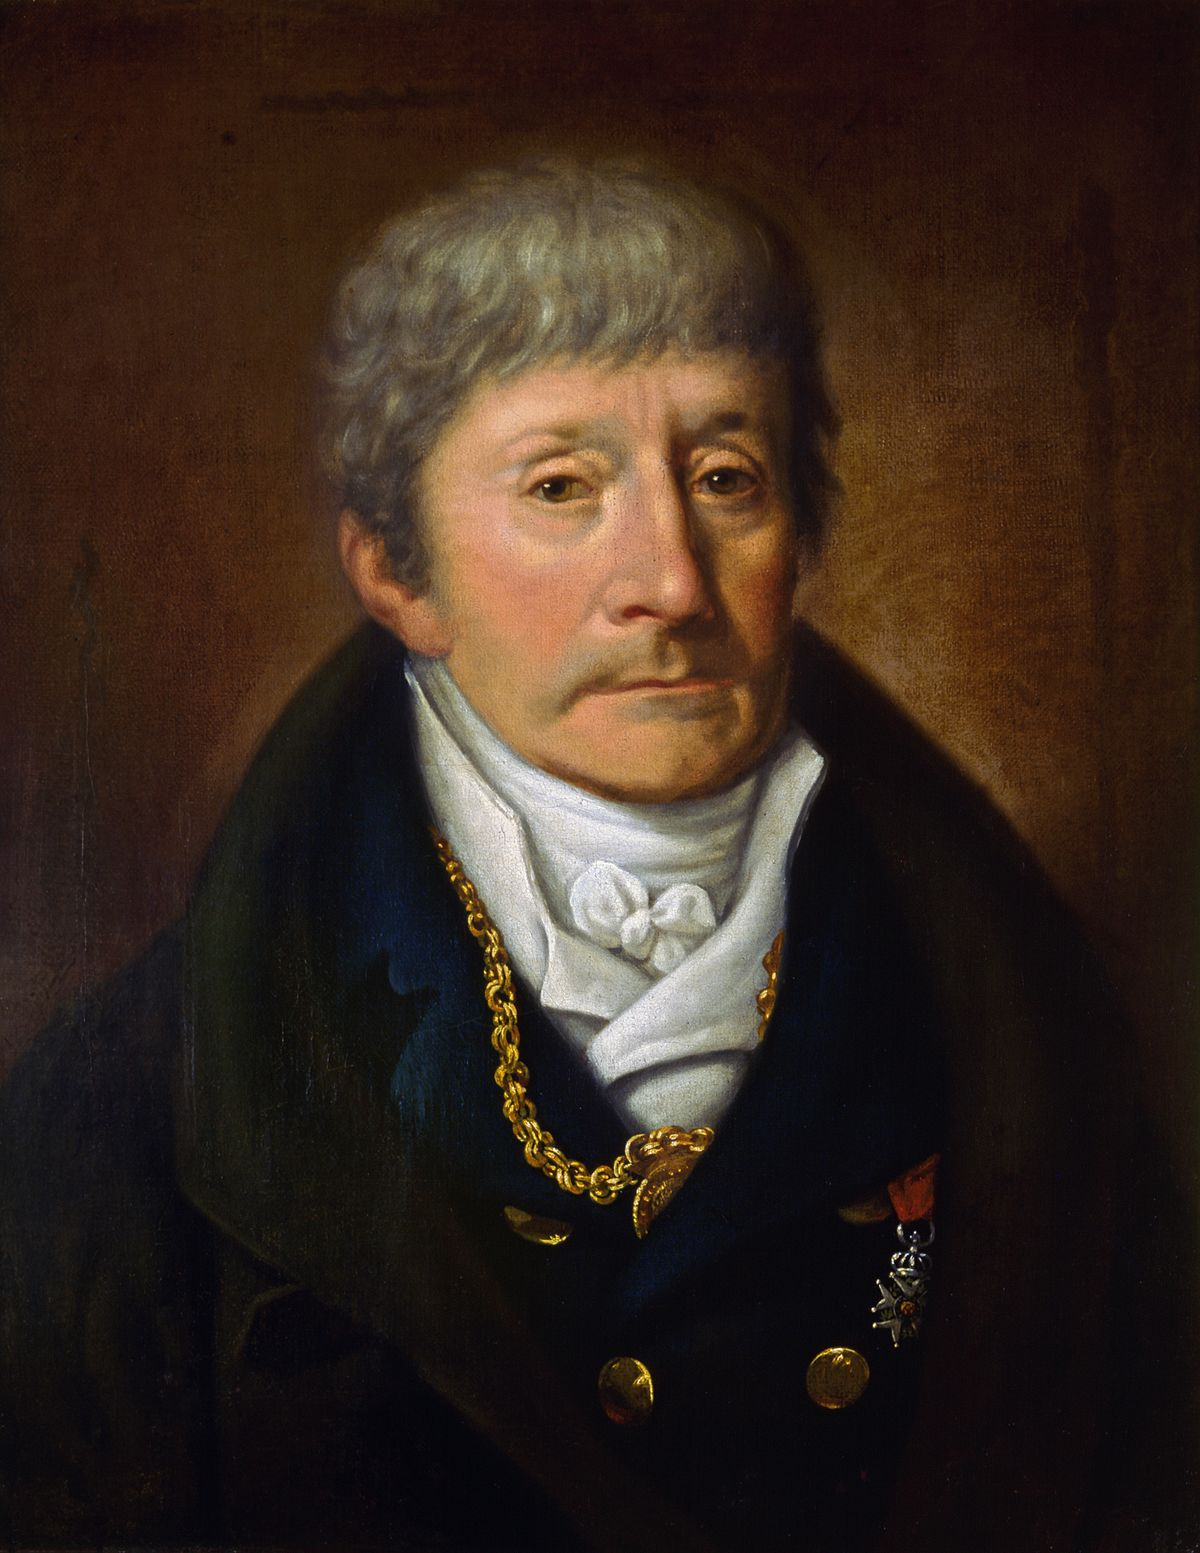 Antonio_Salieri_painted_by_Joseph_Willibrord_Mähler